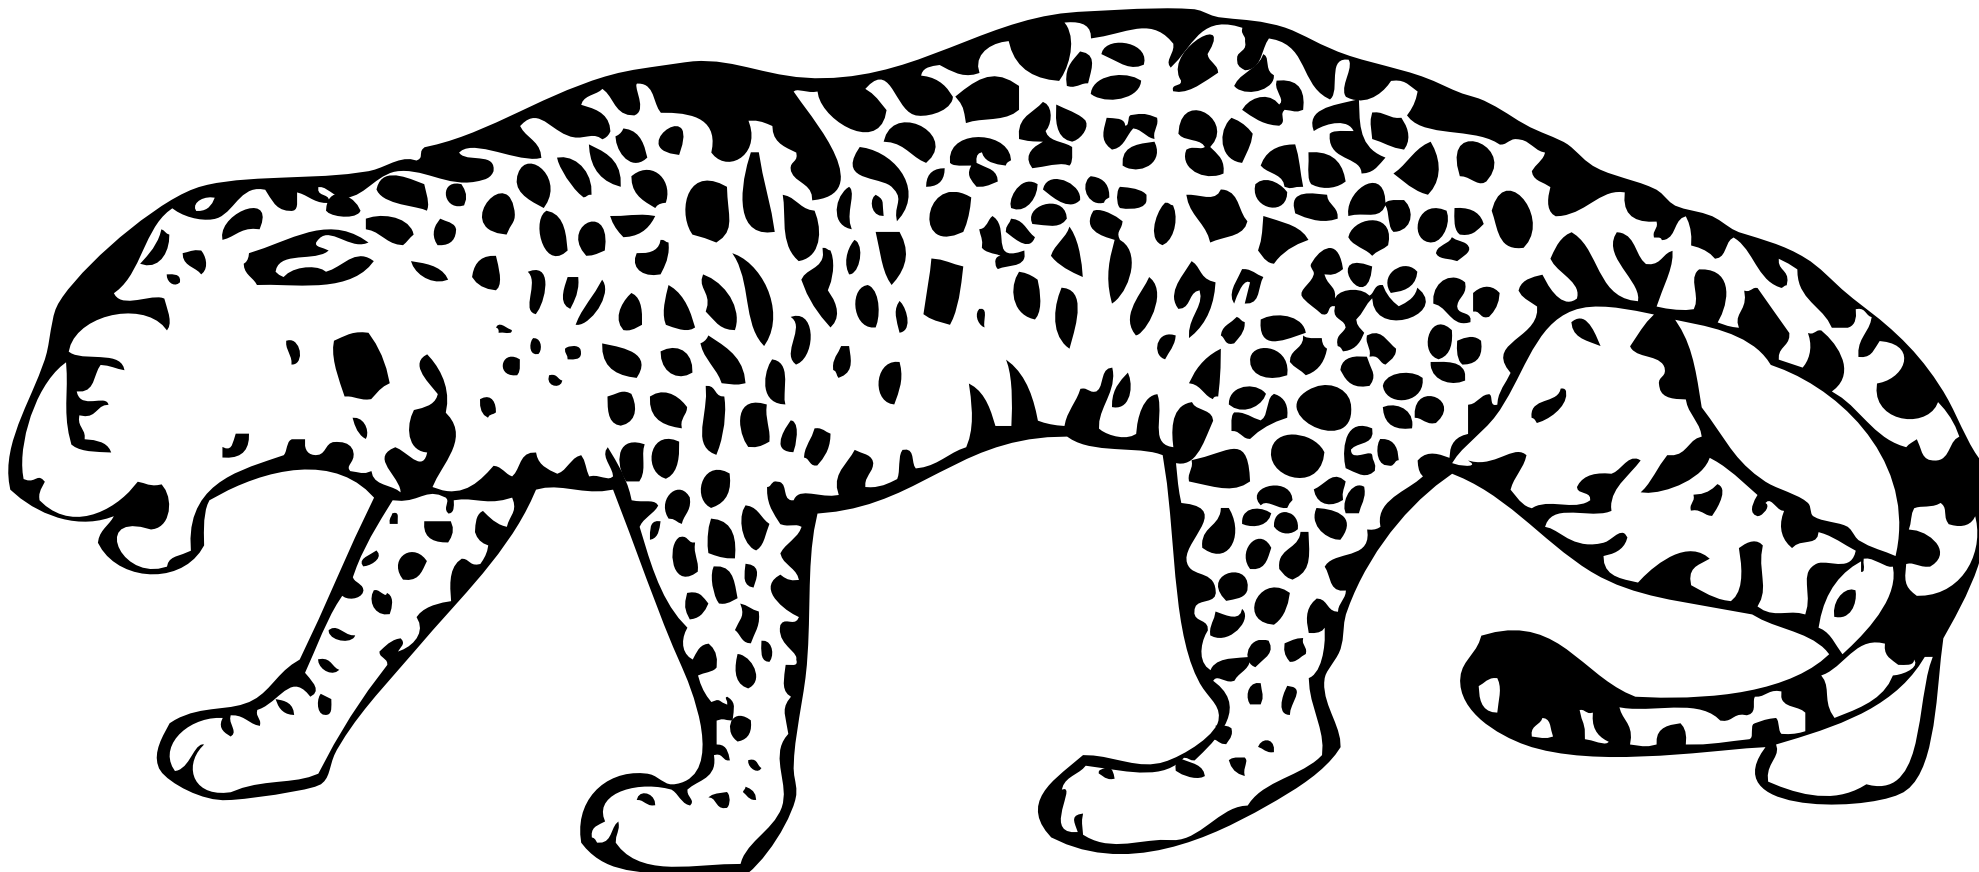 Cheetahs drawing black and white. Leopard png transparent pluspngcom